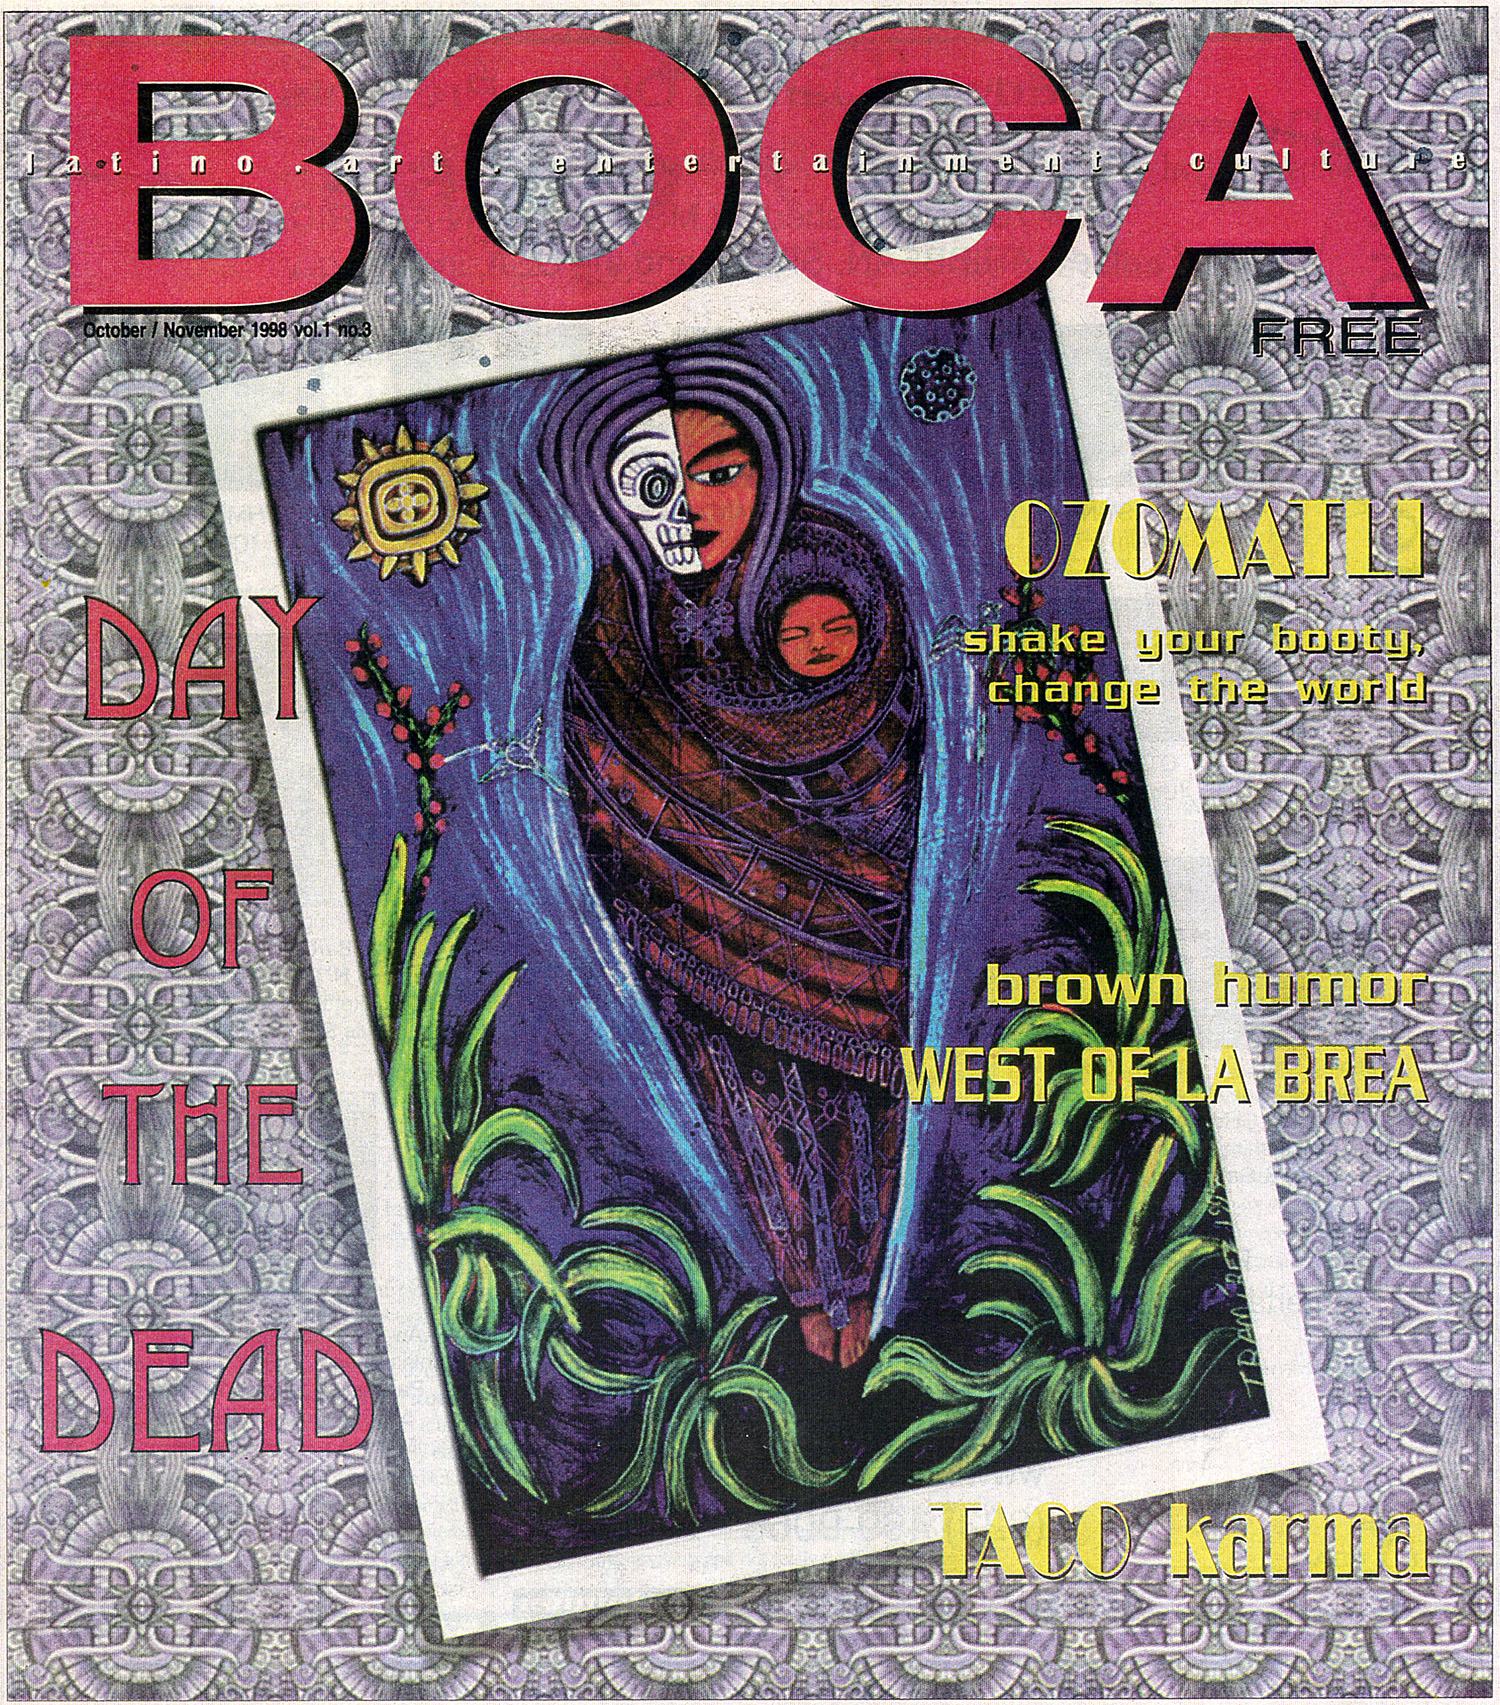 Painting used for cover of BOCA magazine, 1996.